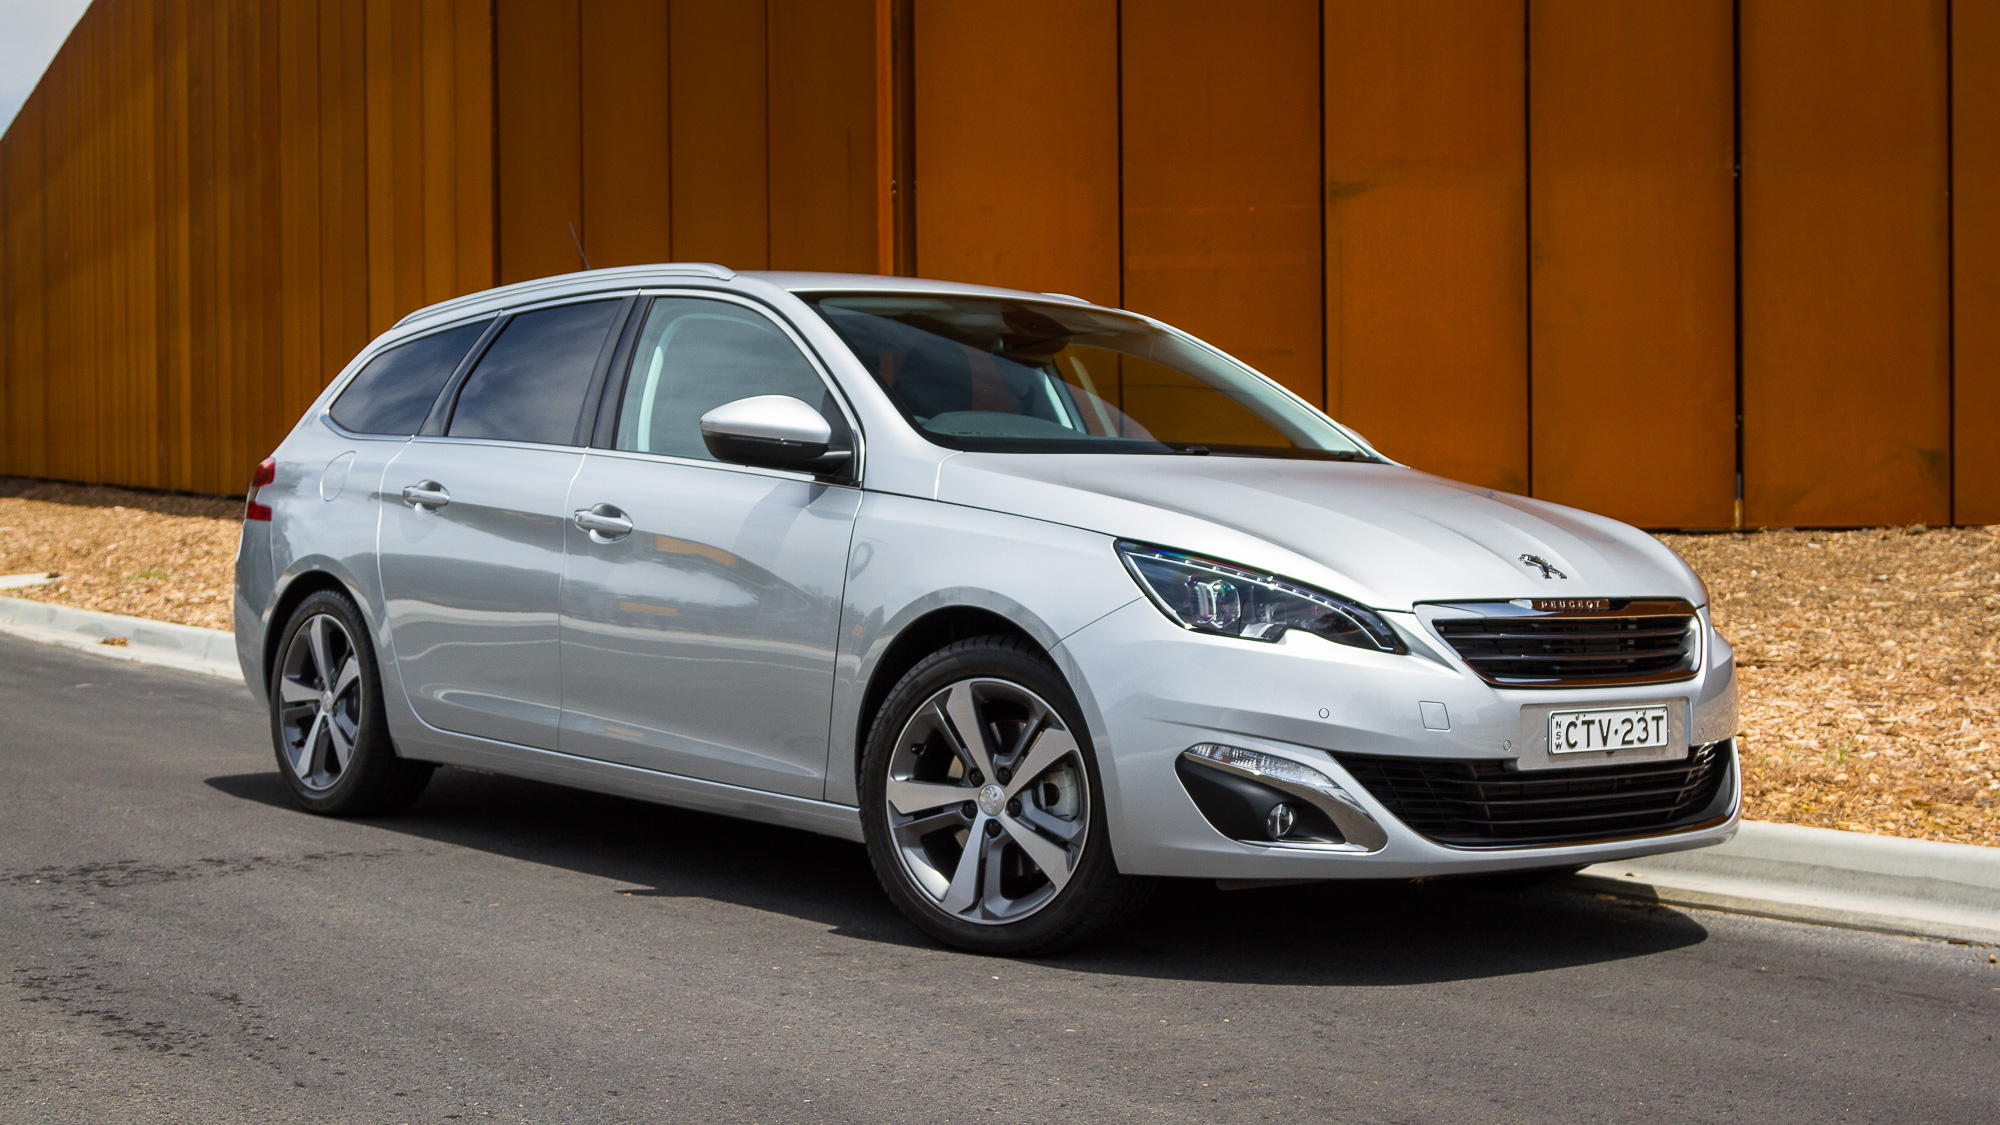 2015 Peugeot 308 Allure Touring   Week With Review